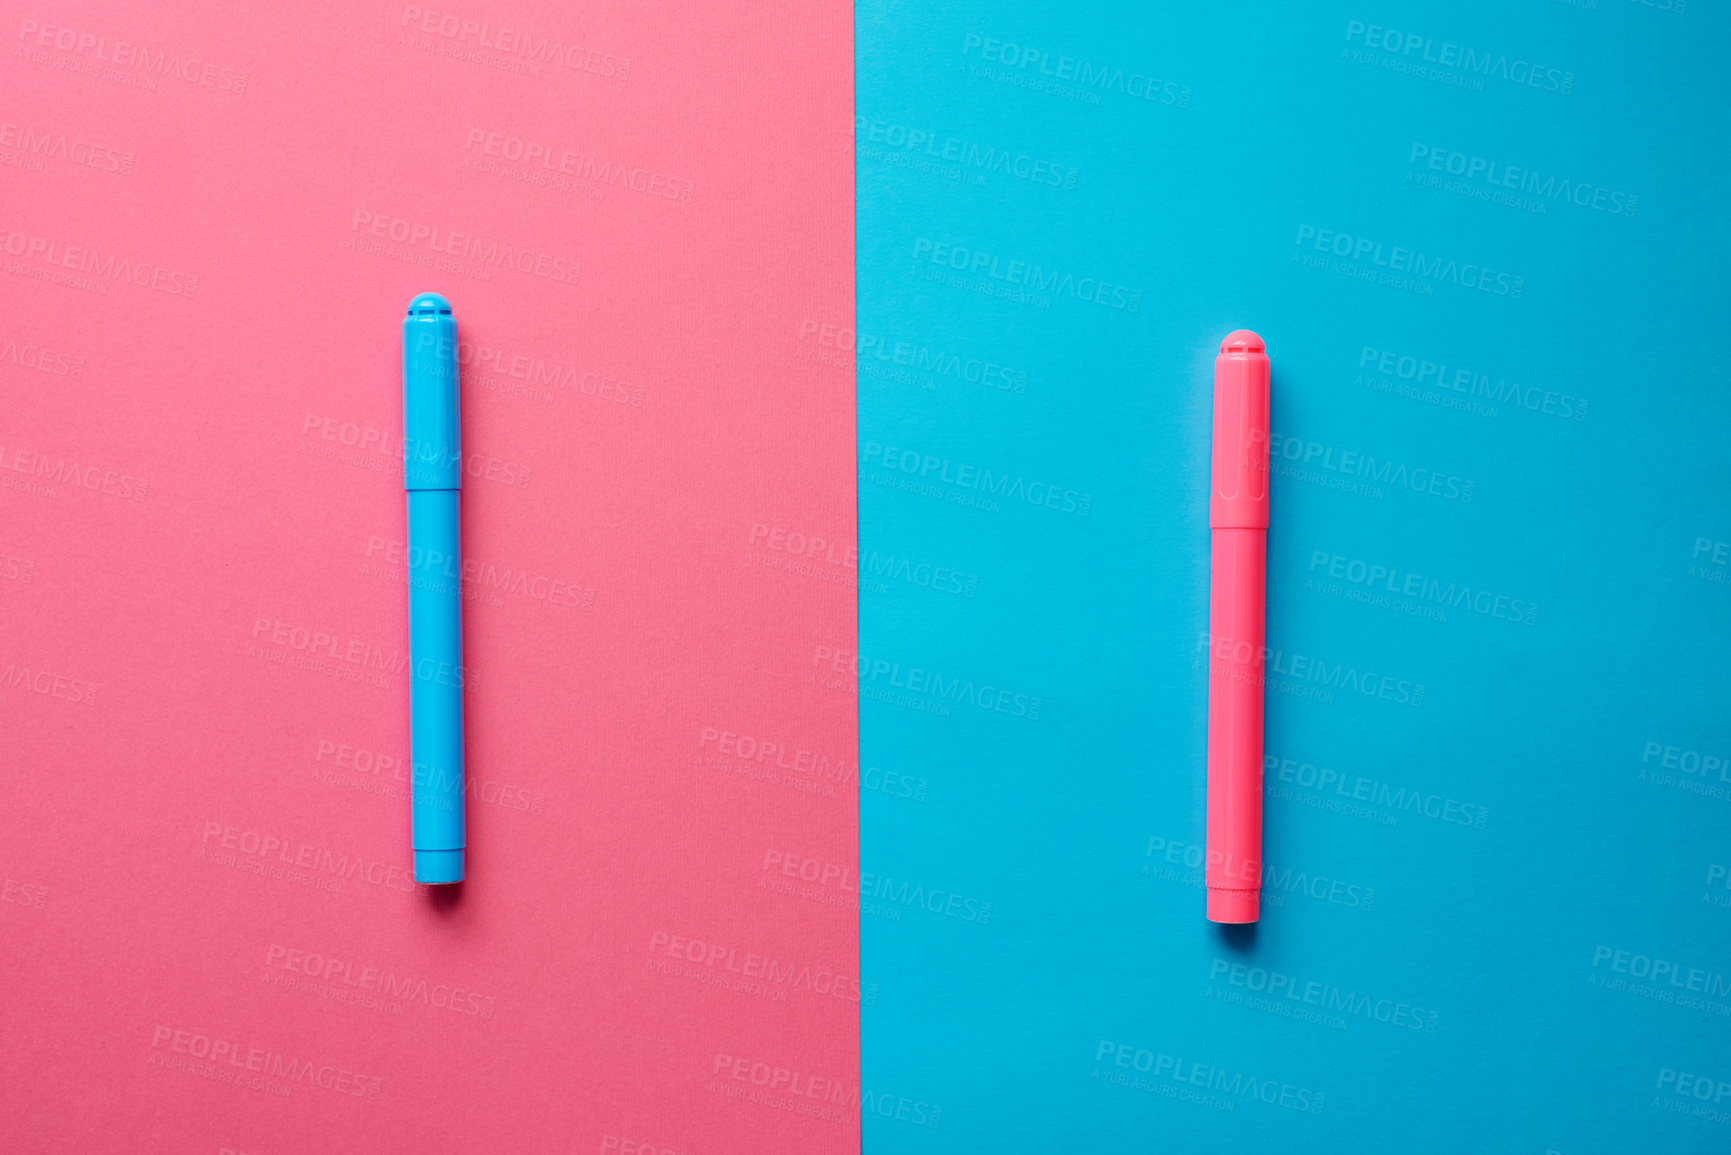 Buy stock photo Studio shot of two marker pens placed on two different coloured backgrounds adjacent to each other